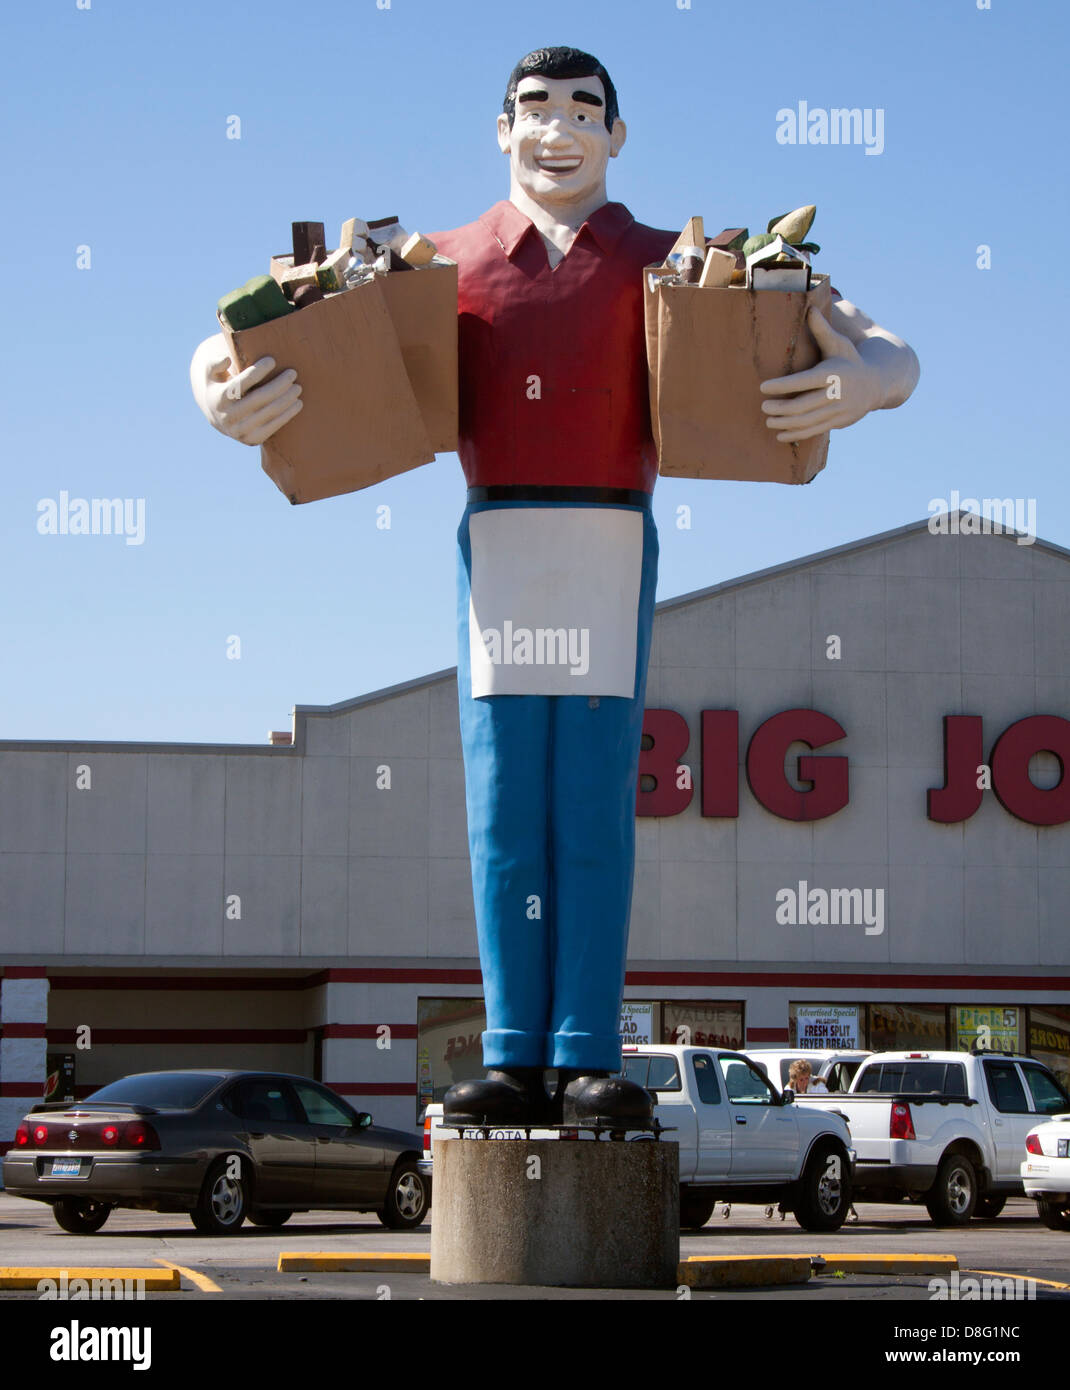 Big John Giant Statue at a supermarket in Metropolis Illinois - Stock Image